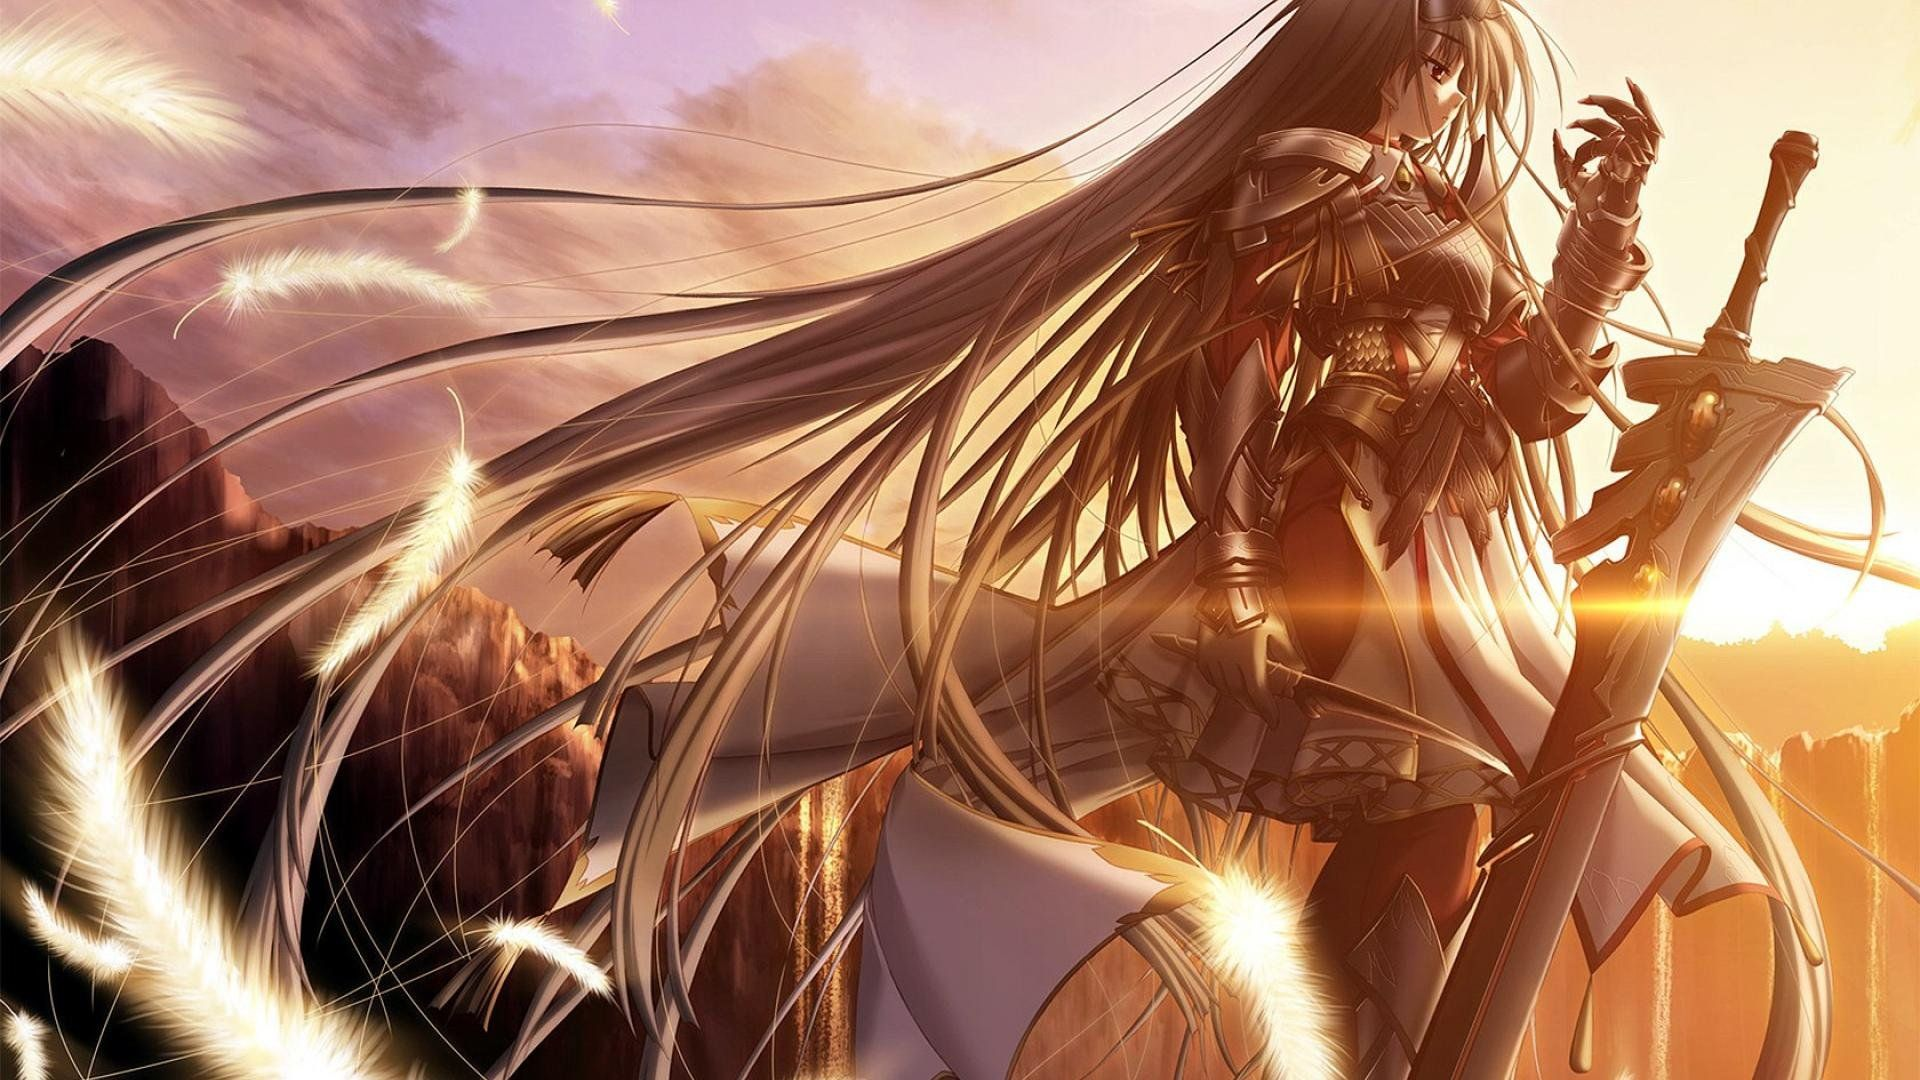 Witch Anime Wallpapers HD Wallpapers Fan Full HD Wallpapers 900×506 Anime Wallpapers 1080p (60 ...